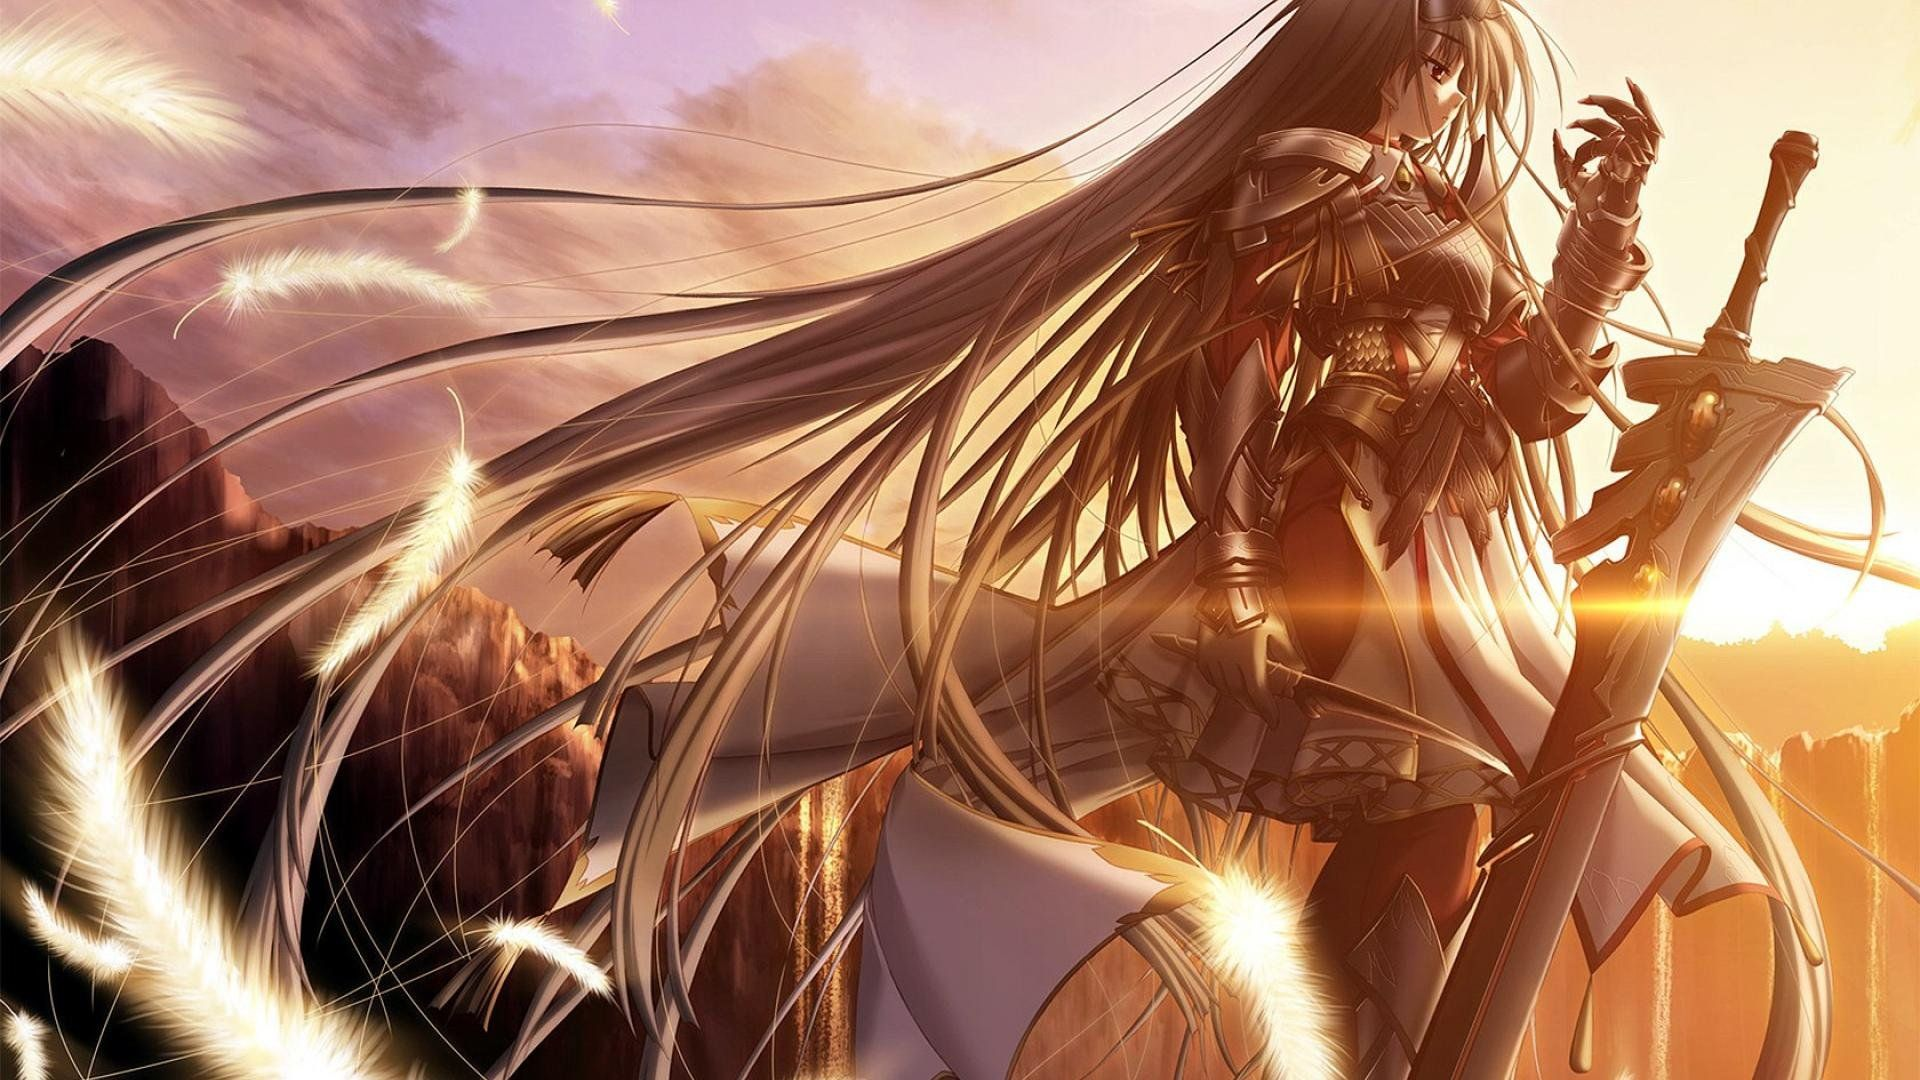 Witch Anime Wallpapers HD Wallpapers Fan Full HD Wallpapers 900×506 Anime Wallpapers 1080p (60 ...